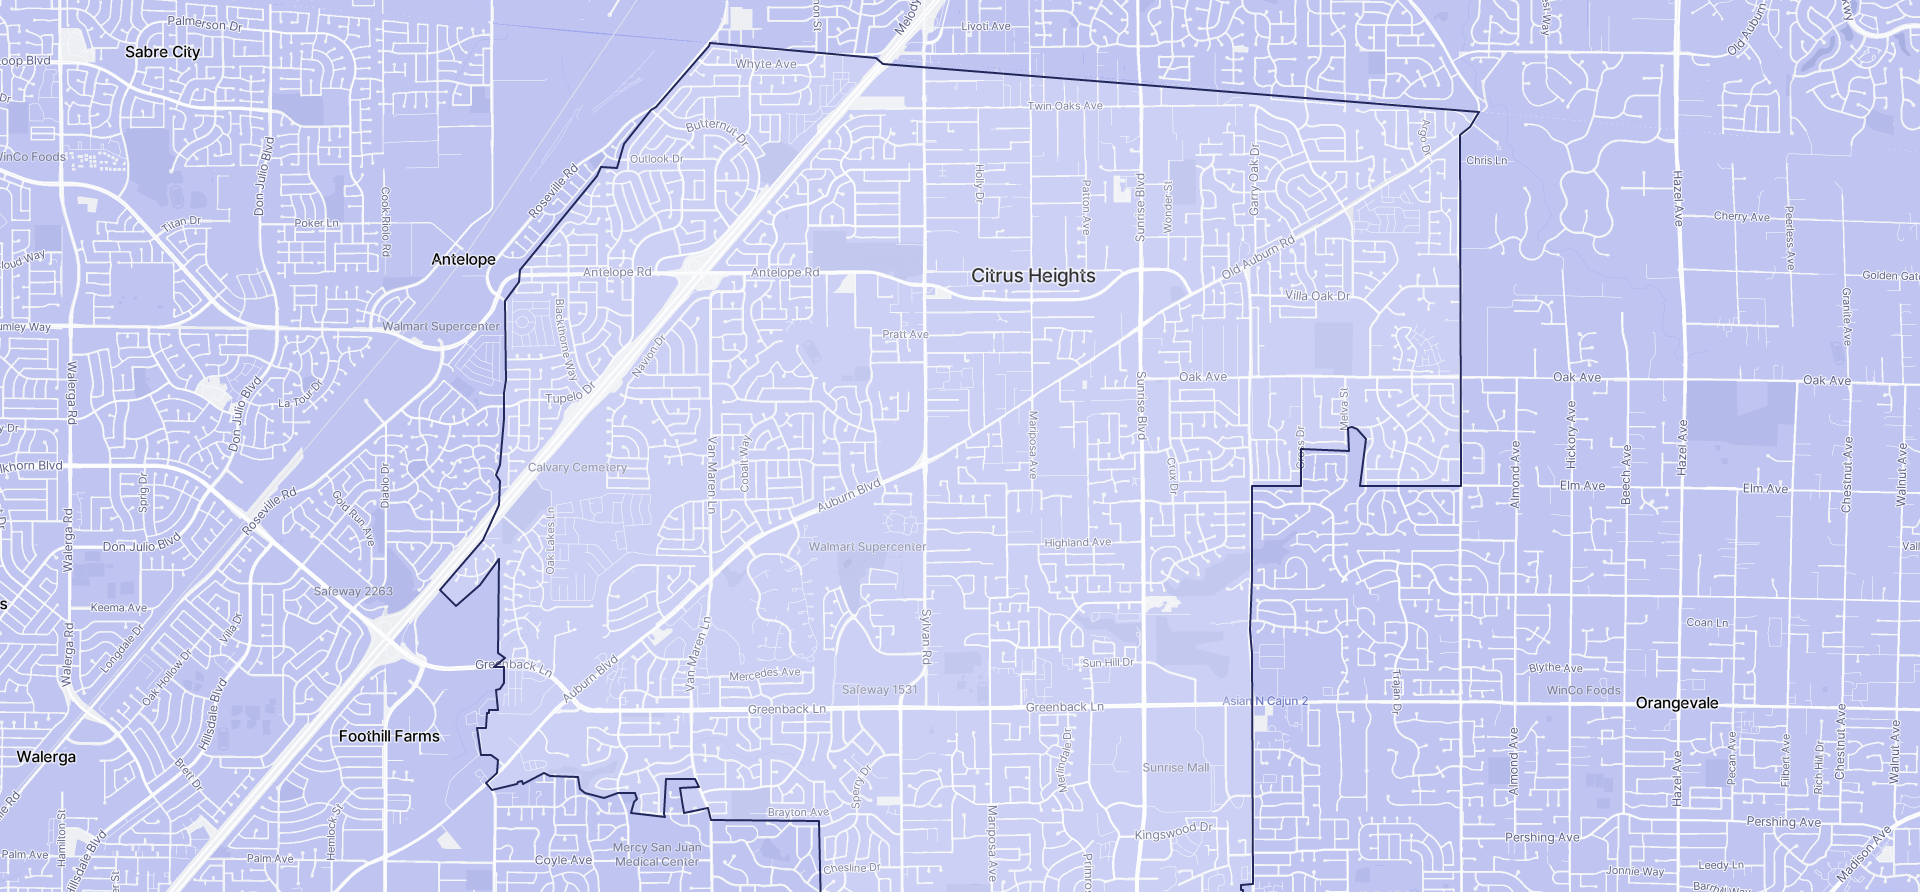 Image of Citrus Heights boundaries on a map.